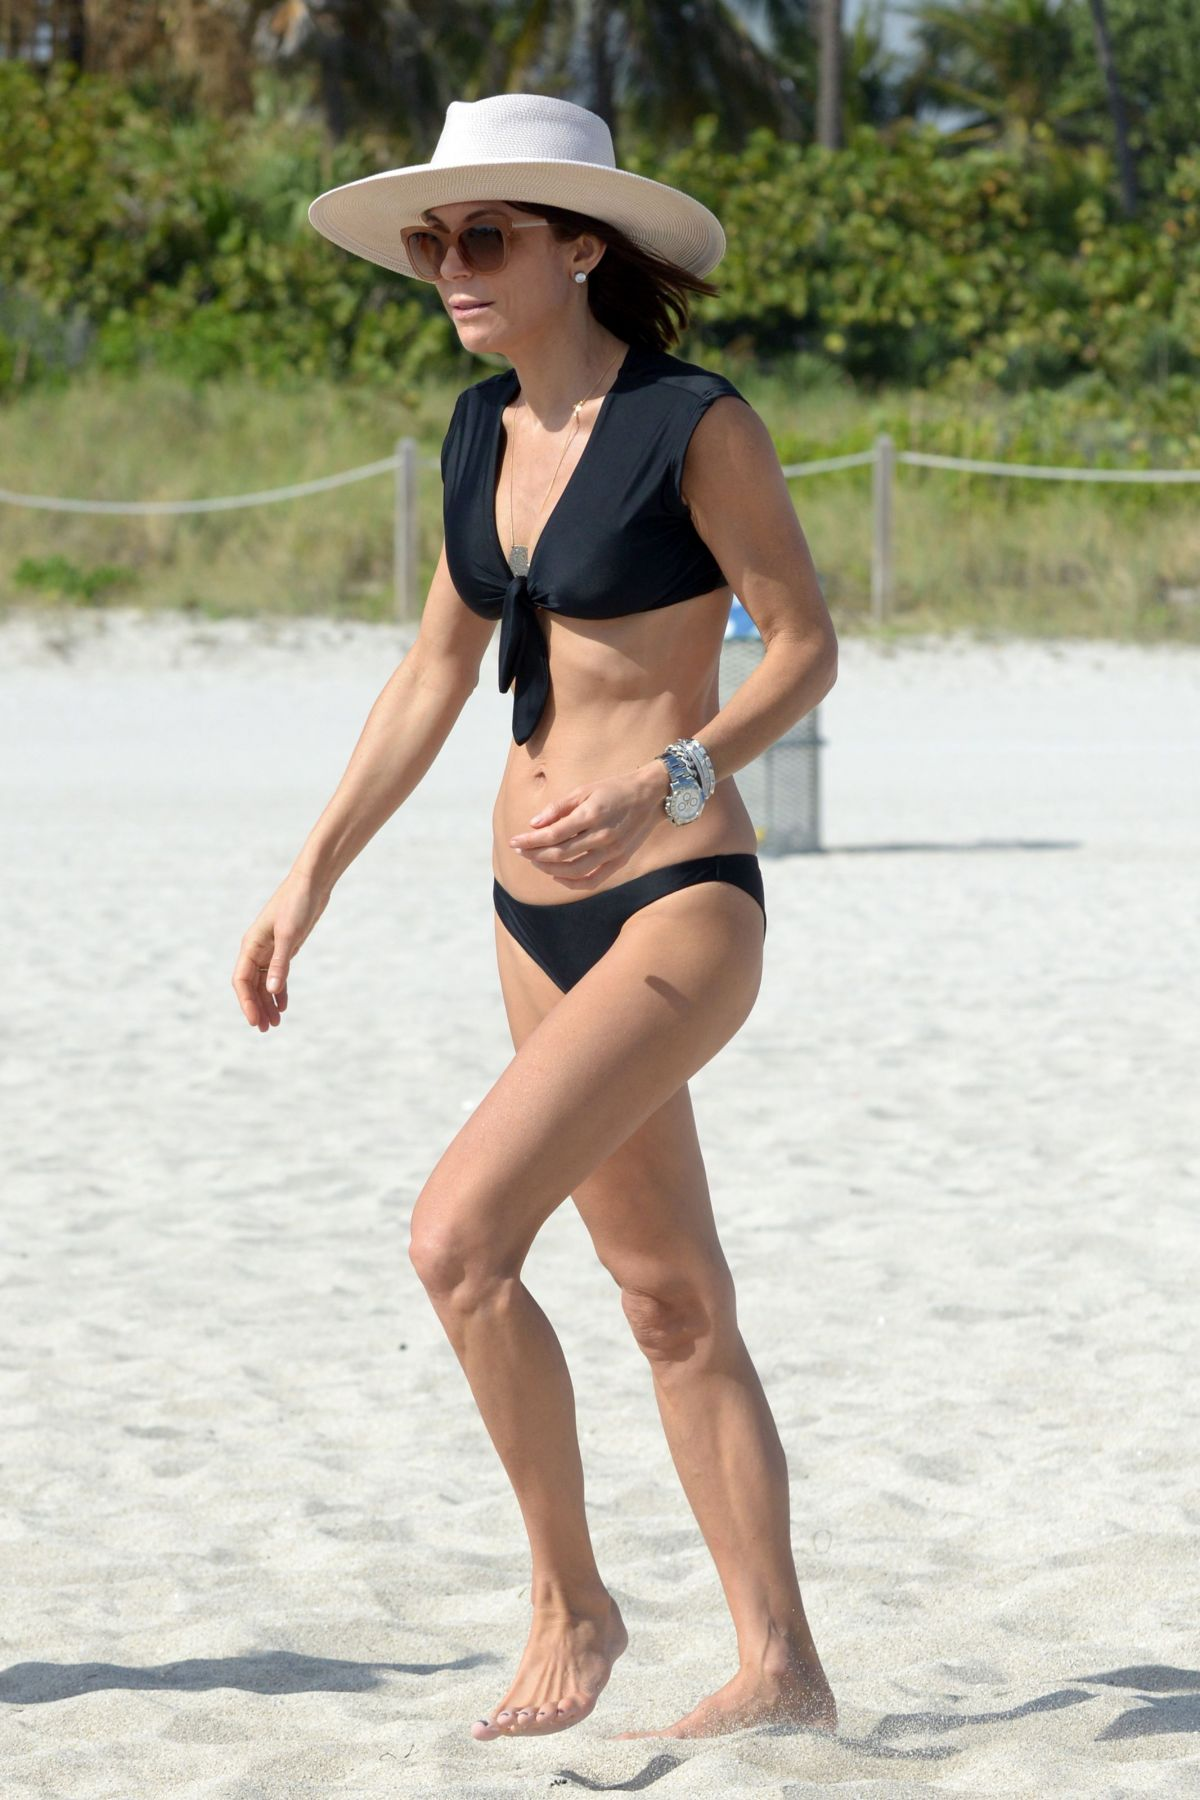 BETHENNY FRANKEL in Bikini on the Beach in Miami 12/05/2016   bethenny-frankel-in-bikini-on-the-beach-in-miami-12-05-2016_27